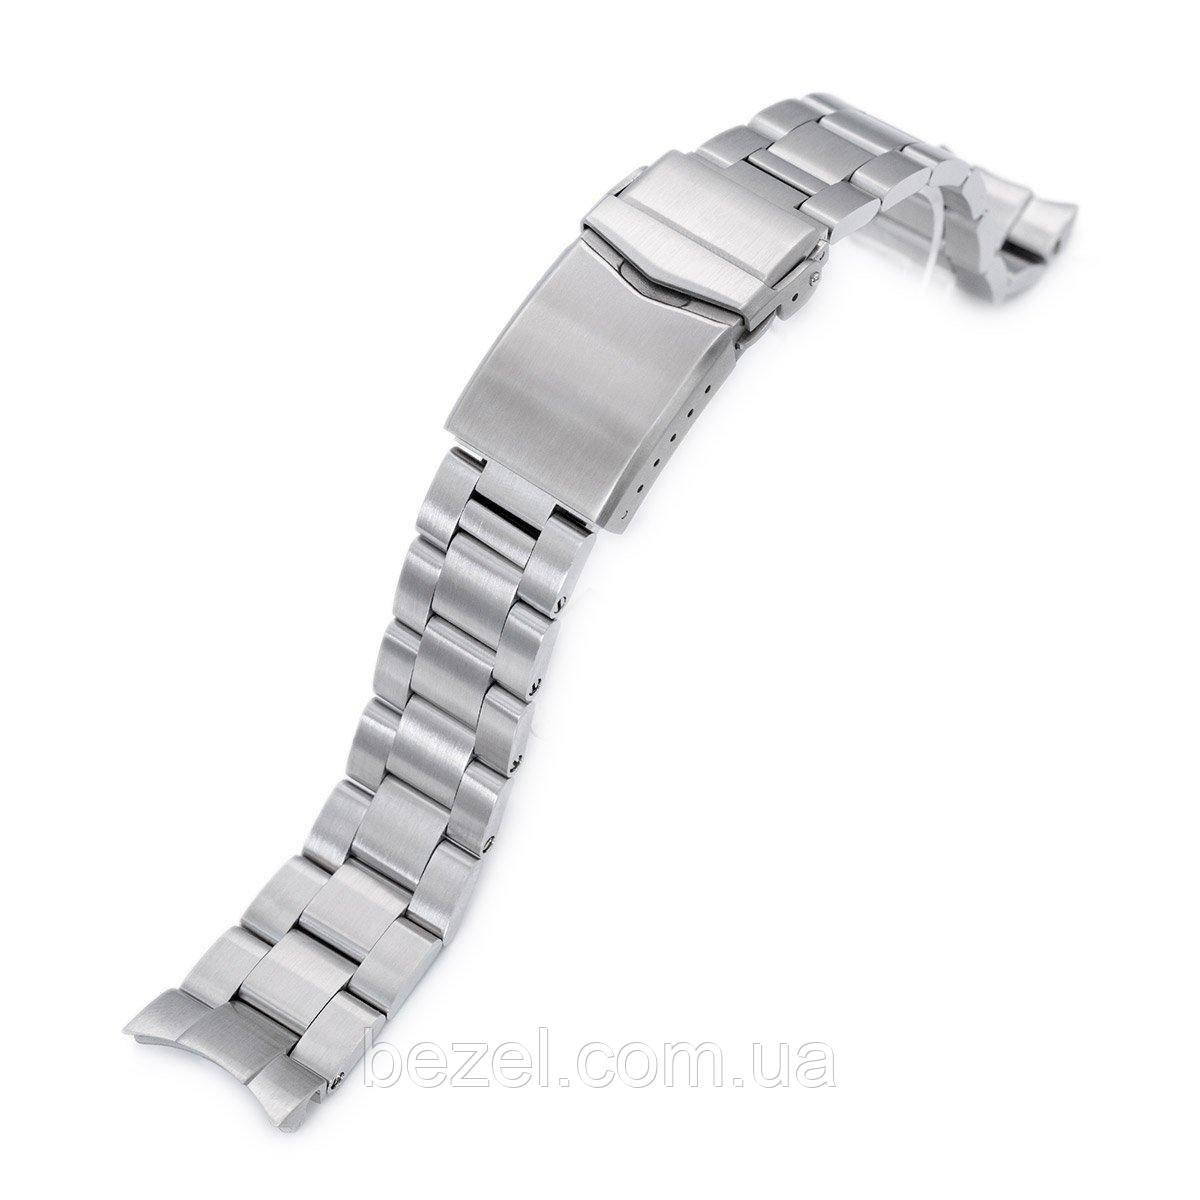 20mm Super 3D Oyster 316L Stainless Steel Watch Bracelet for Seiko Mechanical Automatic SARB033, V-Clasp, Brushed